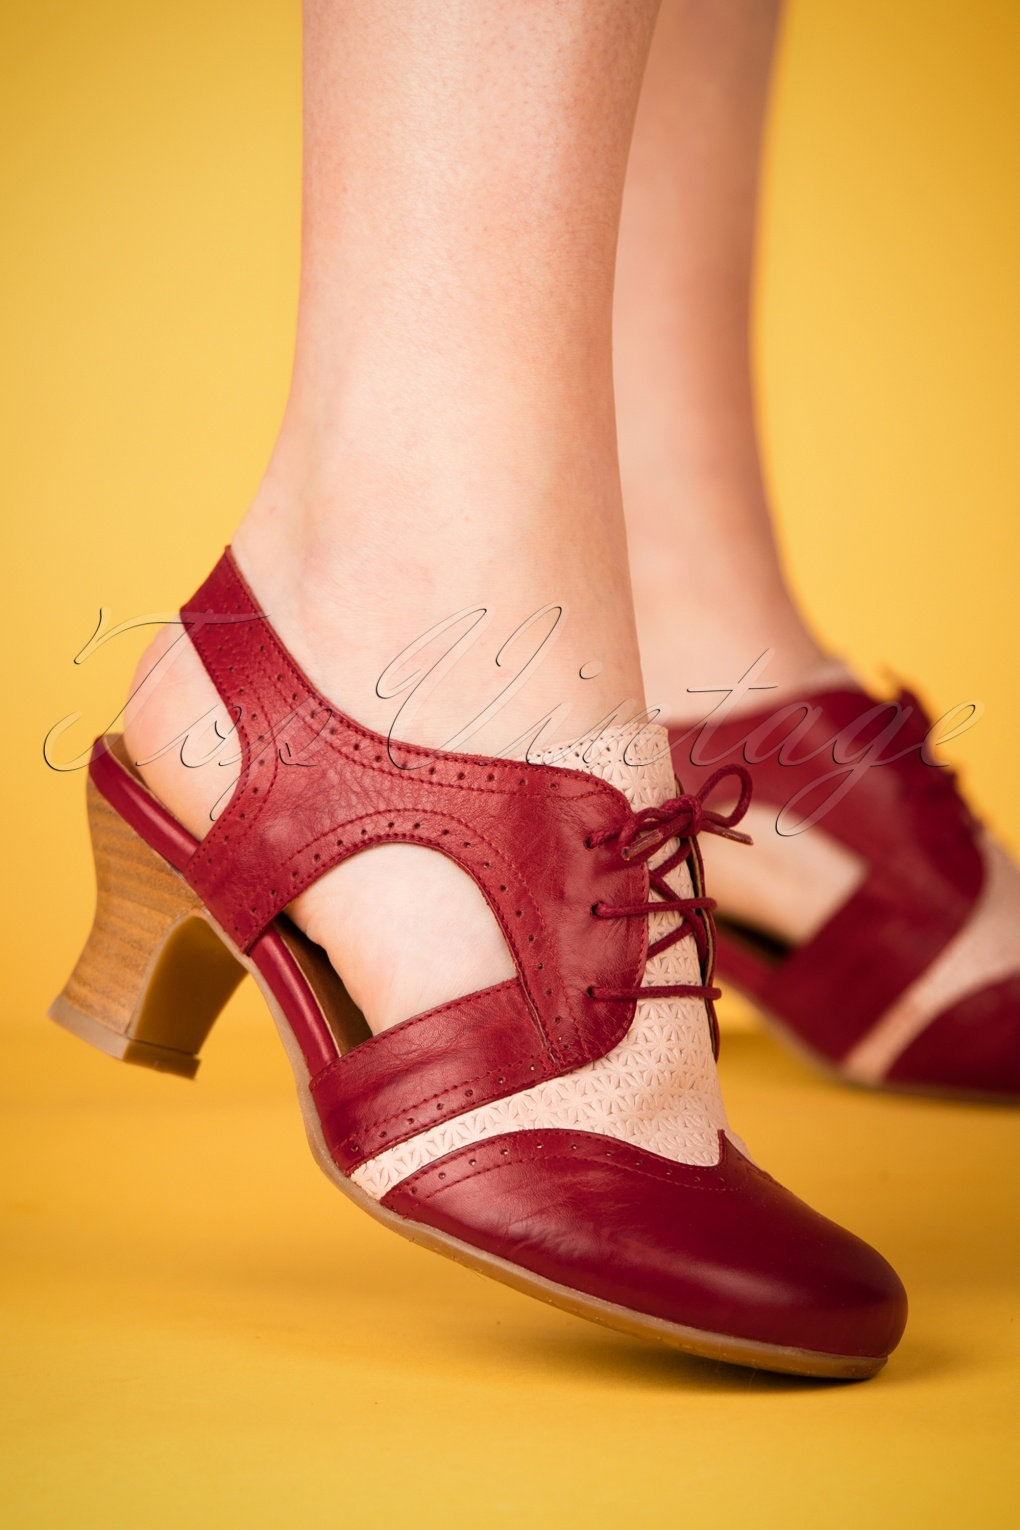 Vintage Sandals | Wedges, Espadrilles – 30s, 40s, 50s, 60s, 70s 40s Terry Lace Up Leather Pumps in Red £113.02 AT vintagedancer.com